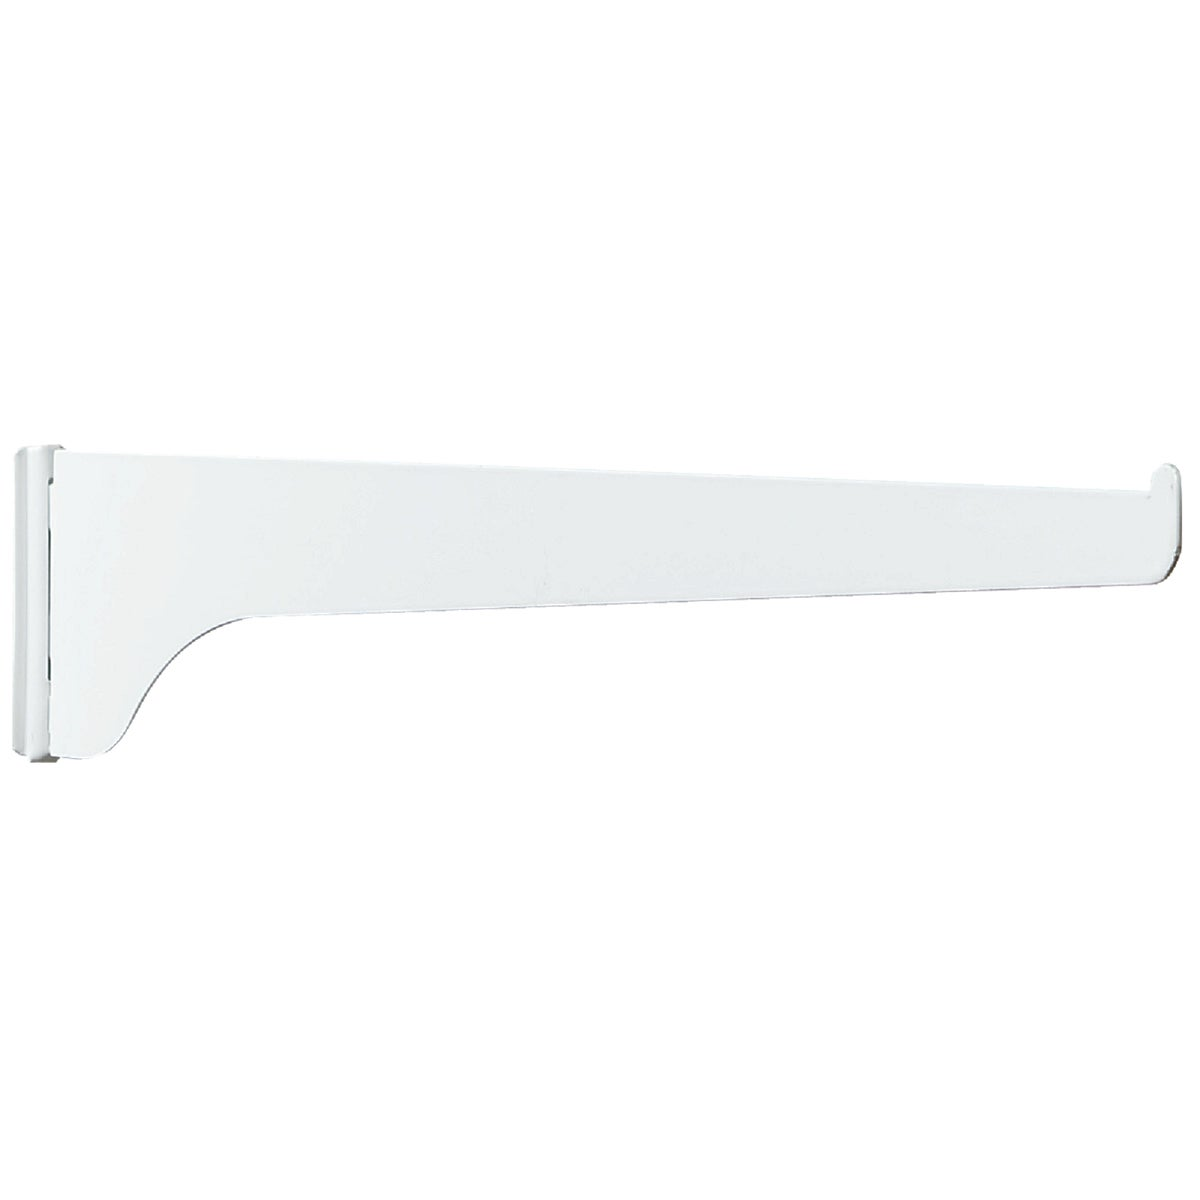 "12"" WHITE BRACKET - 180WH by Knape & Vogt Mfg Co"